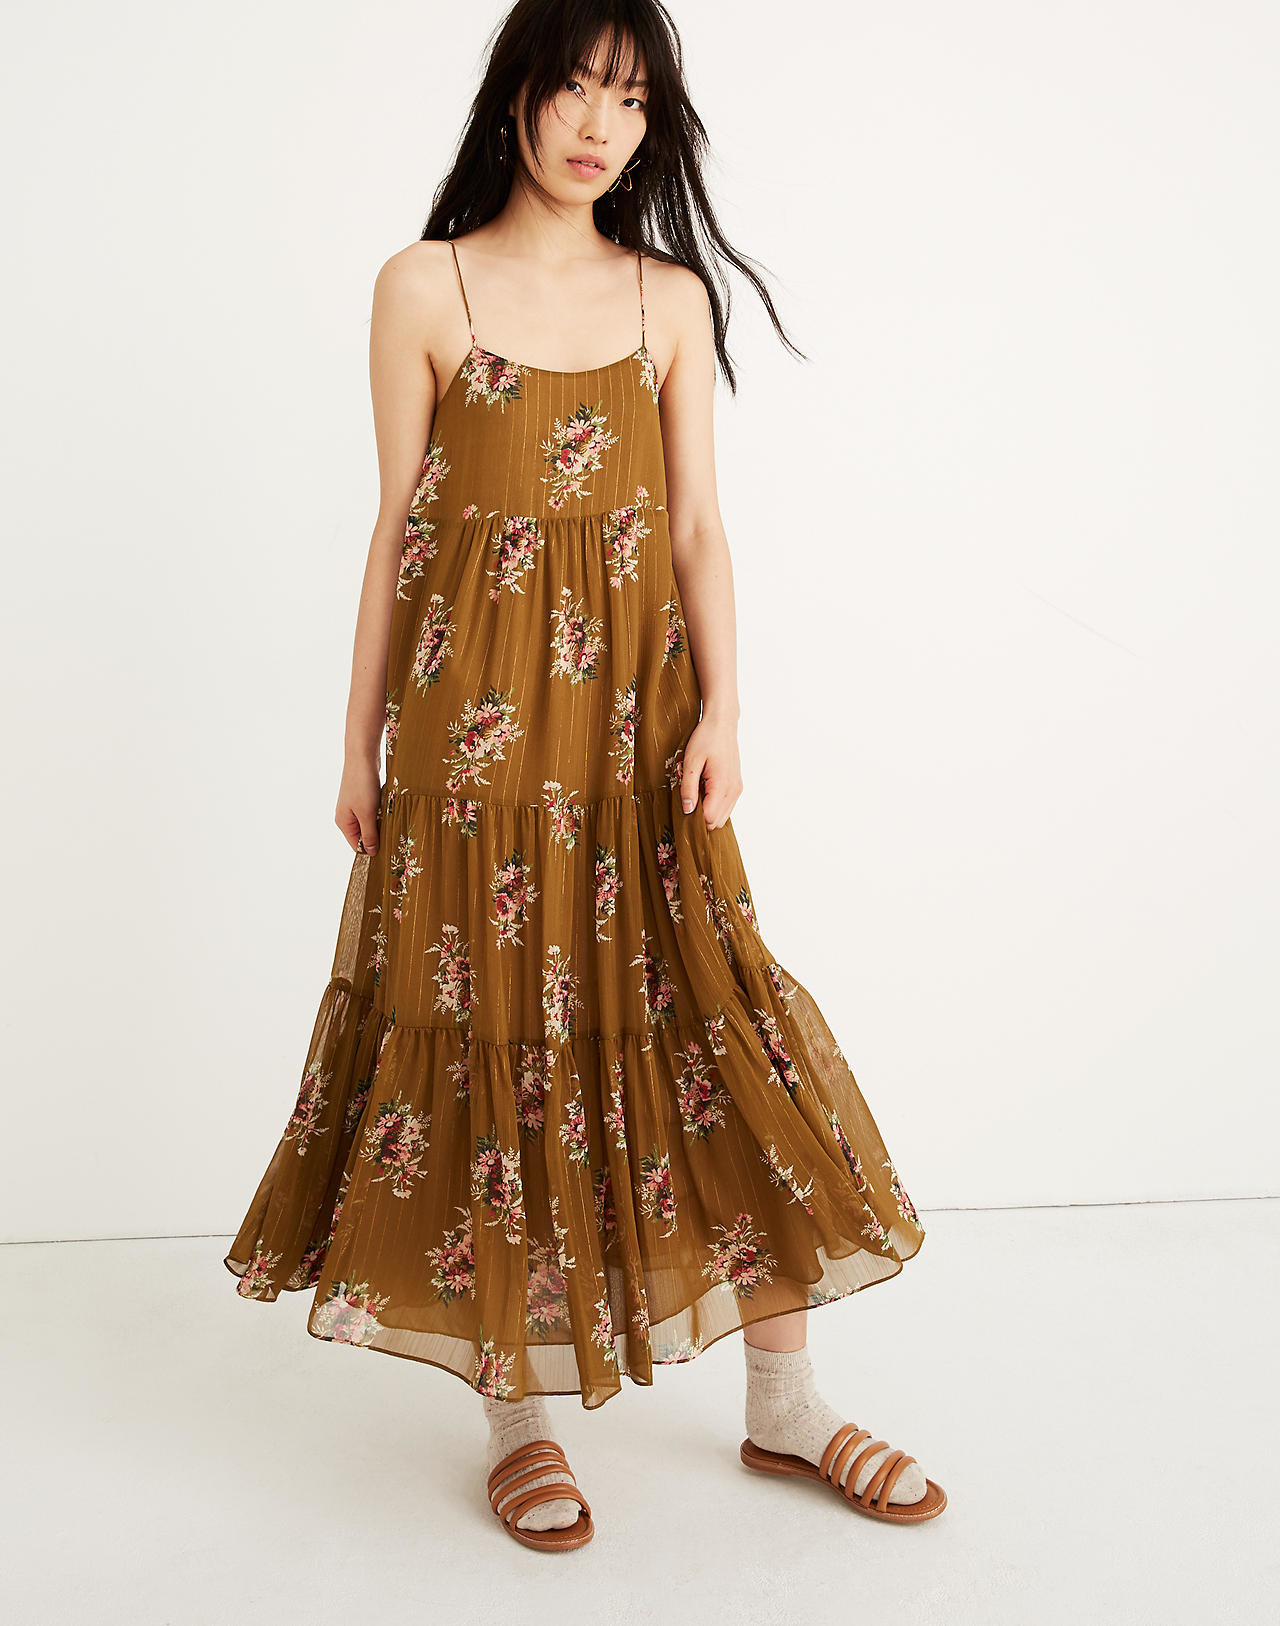 c54ba7465a2 A darling corsage-adorned tiered dress that ll look gorgeous swinging  amongst the cherry blossoms or whatever foliage that sprouts up near you.  Madewell